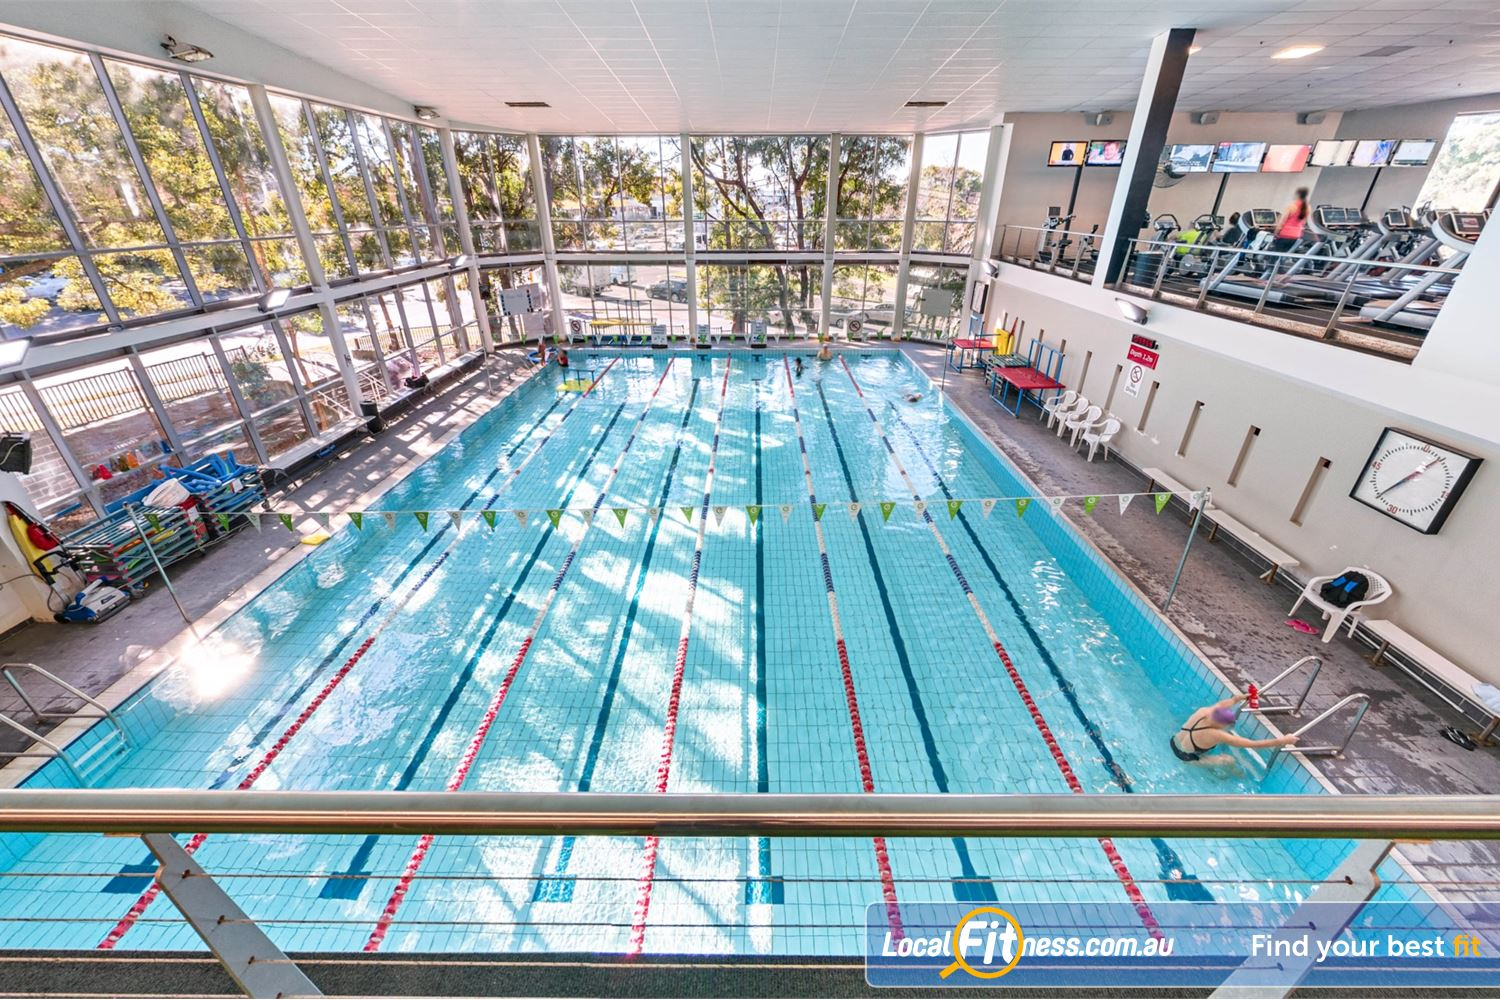 Fitness First Near Oyster Bay Our Sylvania swimming pool is great for lap swimming.